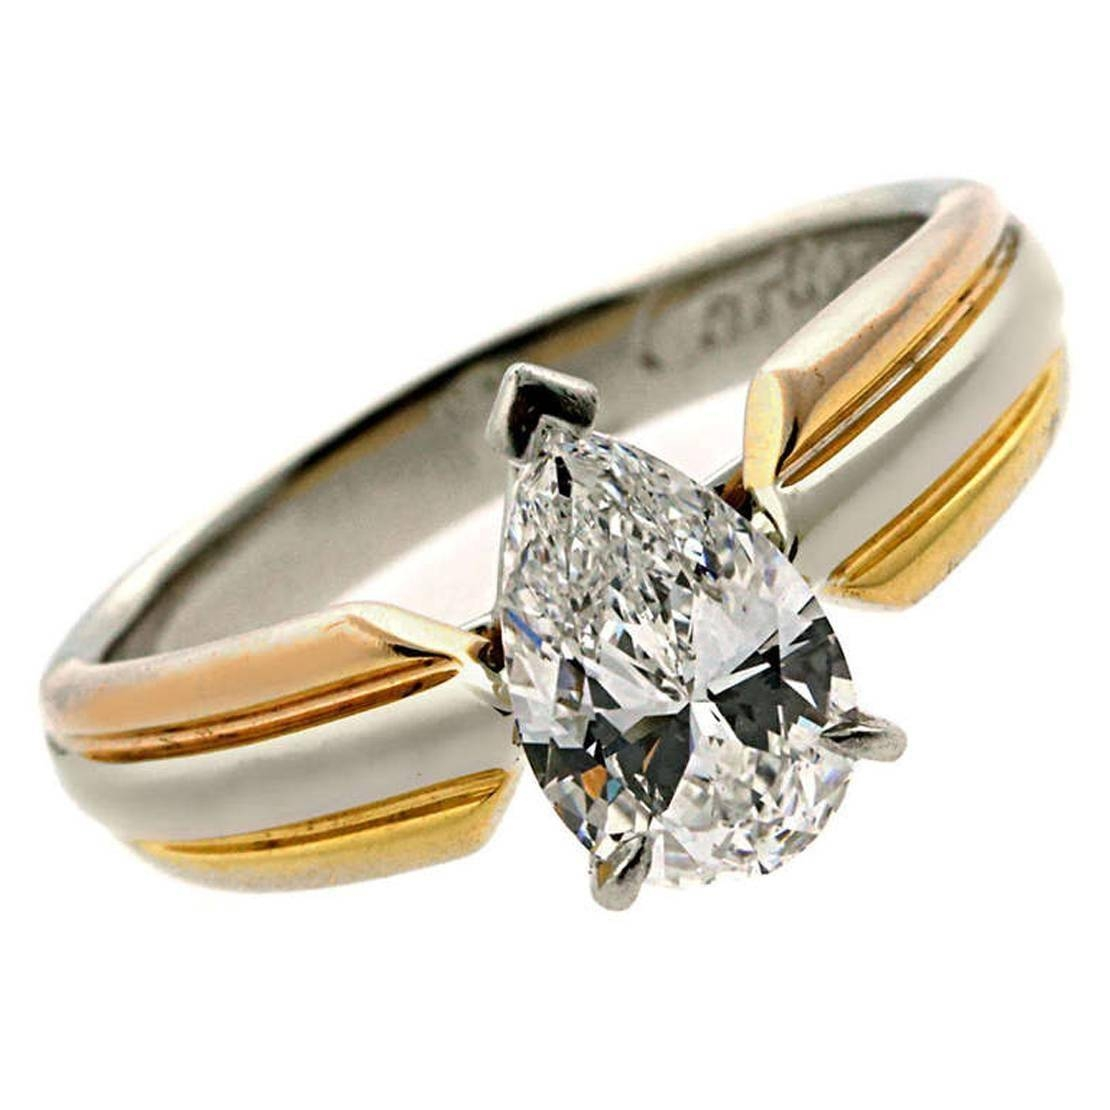 Cartier Pear Shaped Diamond Gold Platinum Engagement Ring At 1Stdibs With Regard To Trinity Diamond Engagement Rings (View 6 of 15)